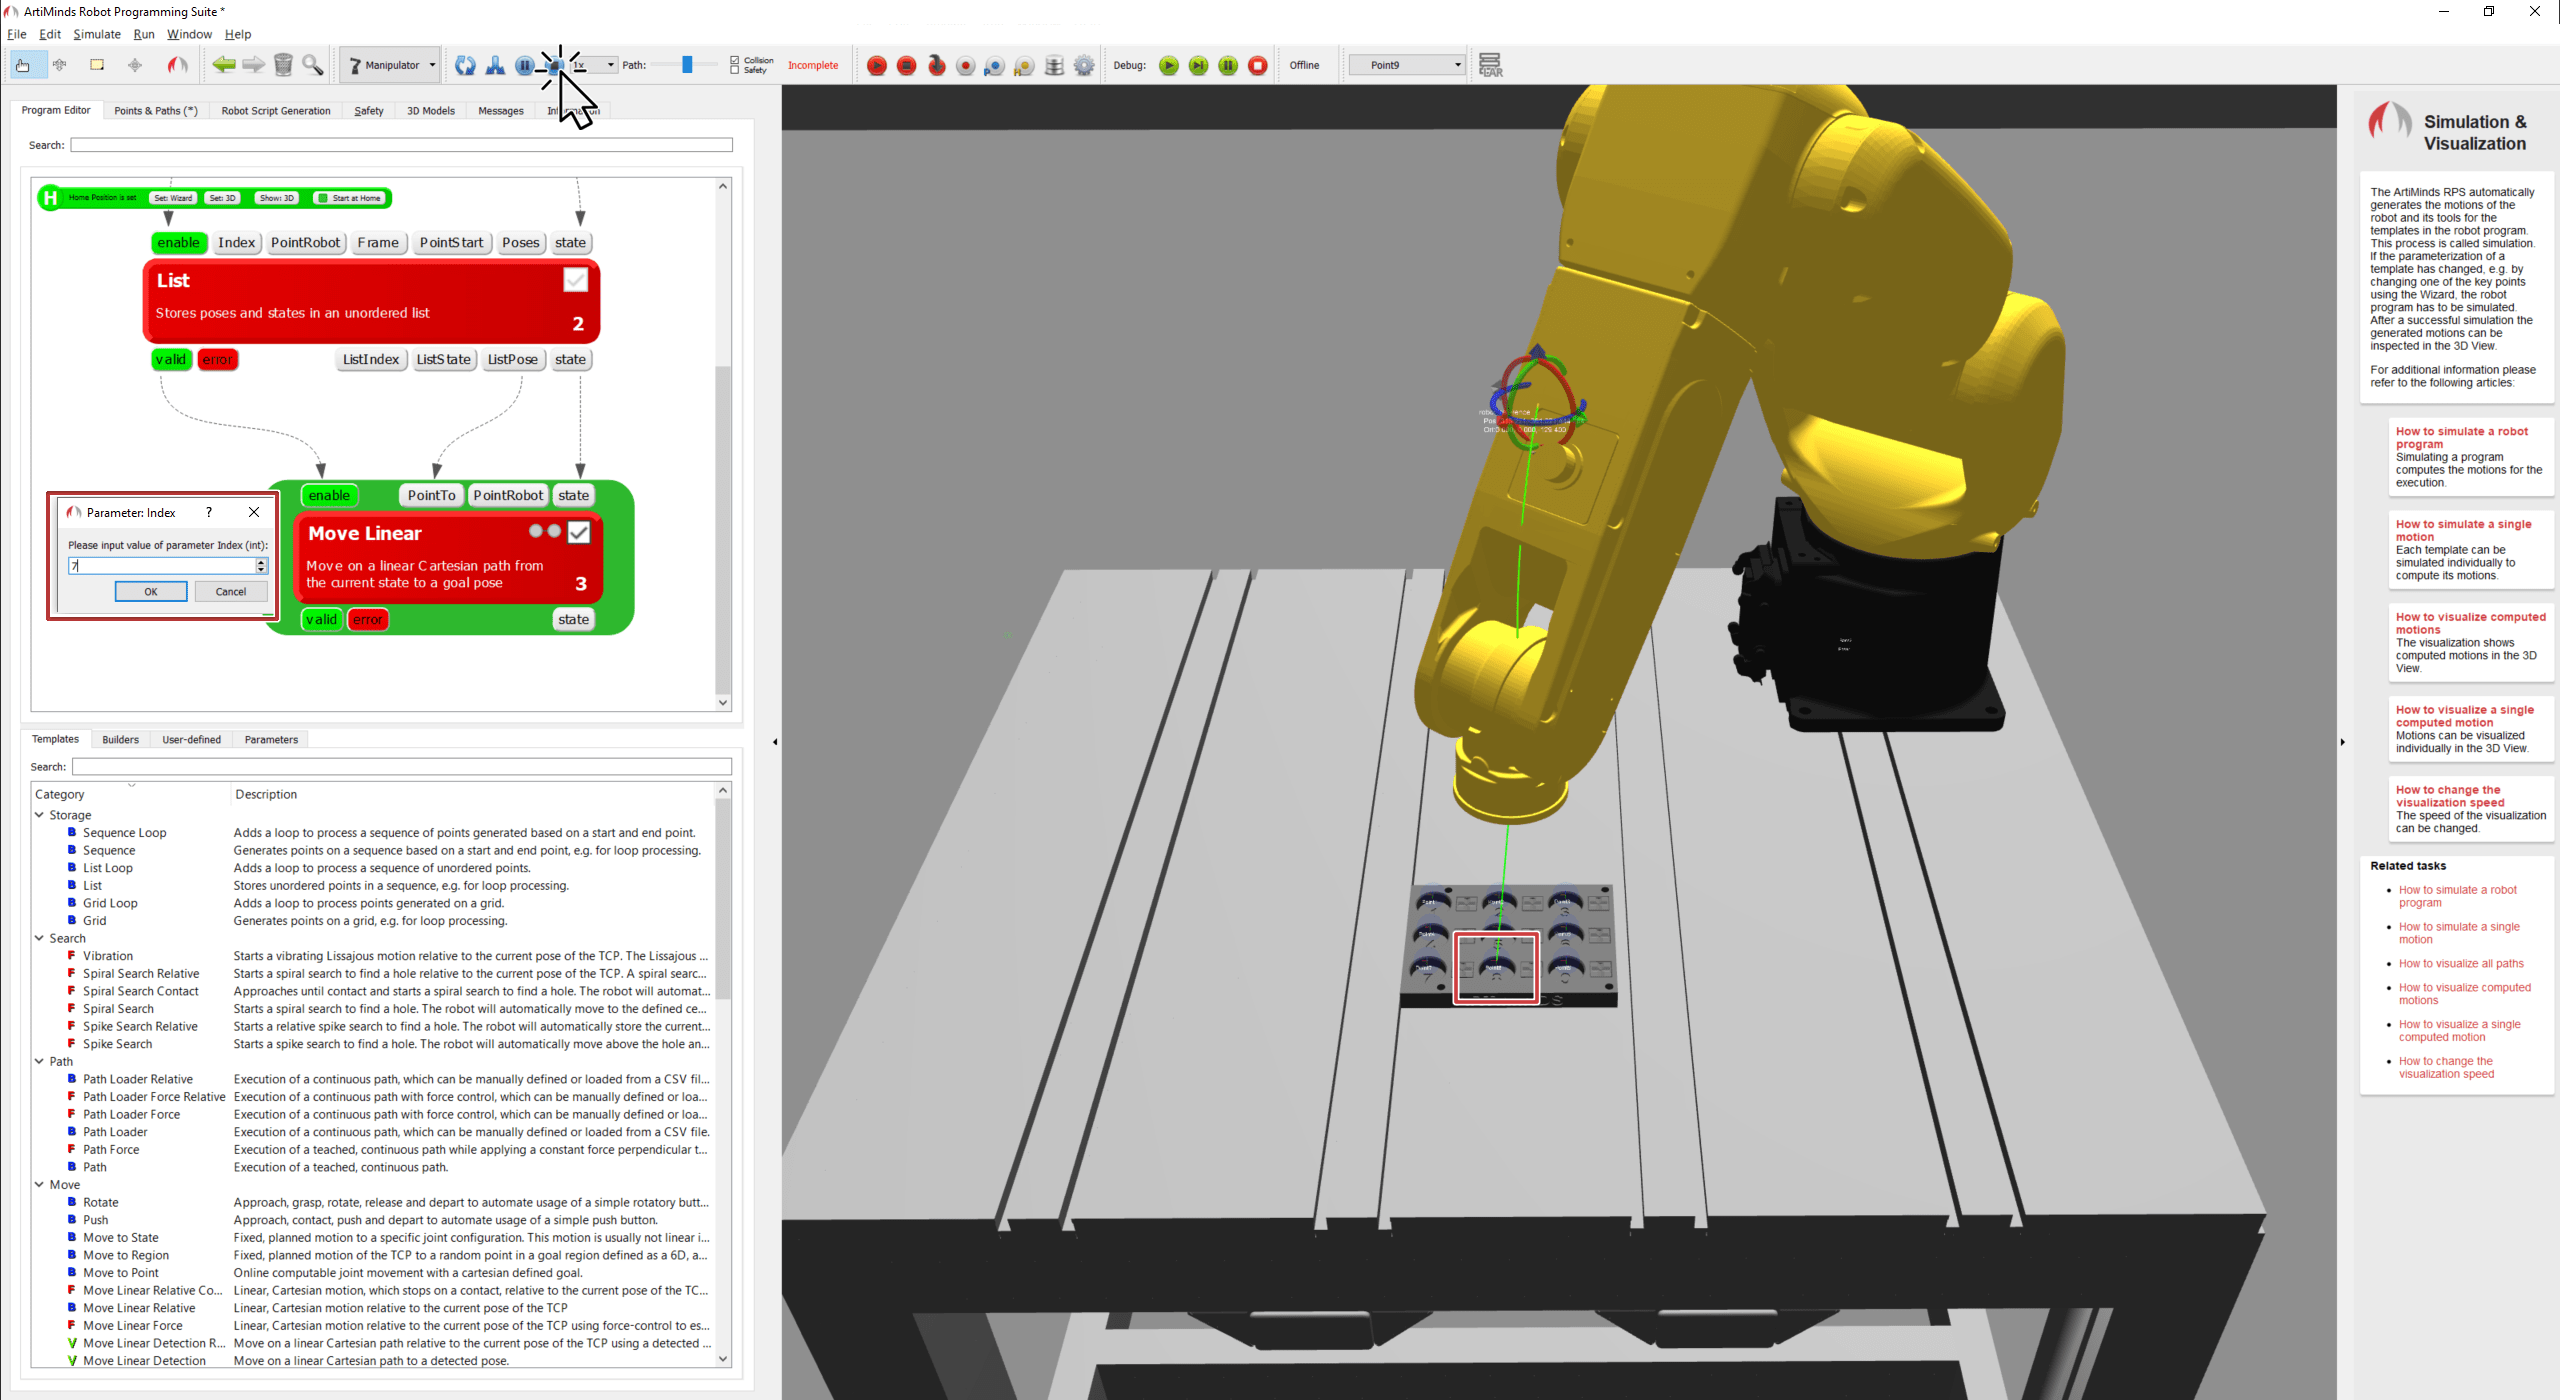 Robot moves to updated target position